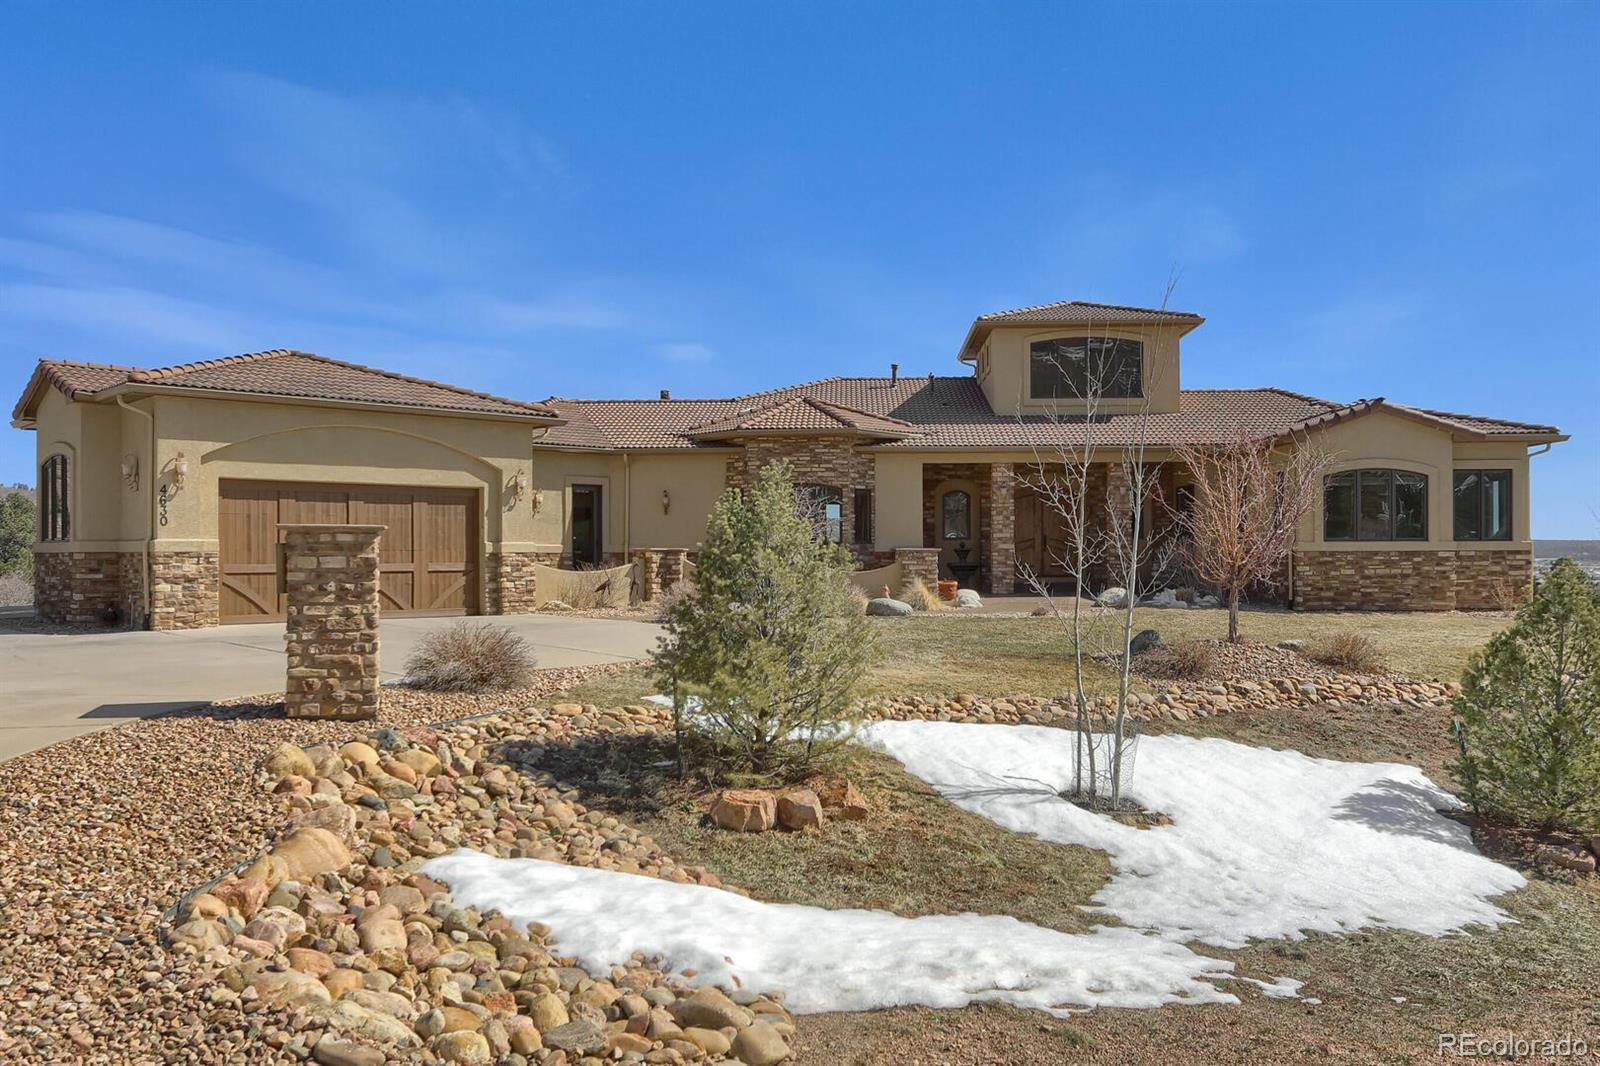 Beautiful Rancher on a Walk Out located on 2.5 acres! Incredible Location! 5 Bed, 7 Bath, 4 Car Garage! Large Wrap Around Deck with amazing views! Gourmet kitchen with upgrade appliances, island, granite countertops, & large pantry. Breakfast Nook/ Sitting area off kitchen with a fireplace! Large Laundry area with an additional 1/2 bath. Large Open Great Room with Fire Place and more Views! Separate Dining area! Main Level Master with large Master Bath and lots of closet space with additional washer/dryer hook up! Large lower level Family Room with Wet Bar and Fire Place and a Walk Out to a Patio & Hot Tub! 5 large bedrooms including Master on Main with an additional bedroom on the main level.(Could be used for an office or bedroom.) Custom Built-In Cabinets! Large area for Dog Run (wrought iron fencing off lower level.) 34 X 15 Court Yard Area! Large additional storage room in basement. Speakers for sonos music in the kitchen,family room,master bedroom,master bath,office,basement family room. Central Vac. Come enjoy the Monument lifestyle located in the foothills of Colorado Springs/Monument with access to miles and miles of hiking trails right out your back door! (See Interactive Floor Plan on Virtural Tour for Floor Plan and Room Sizes!!)